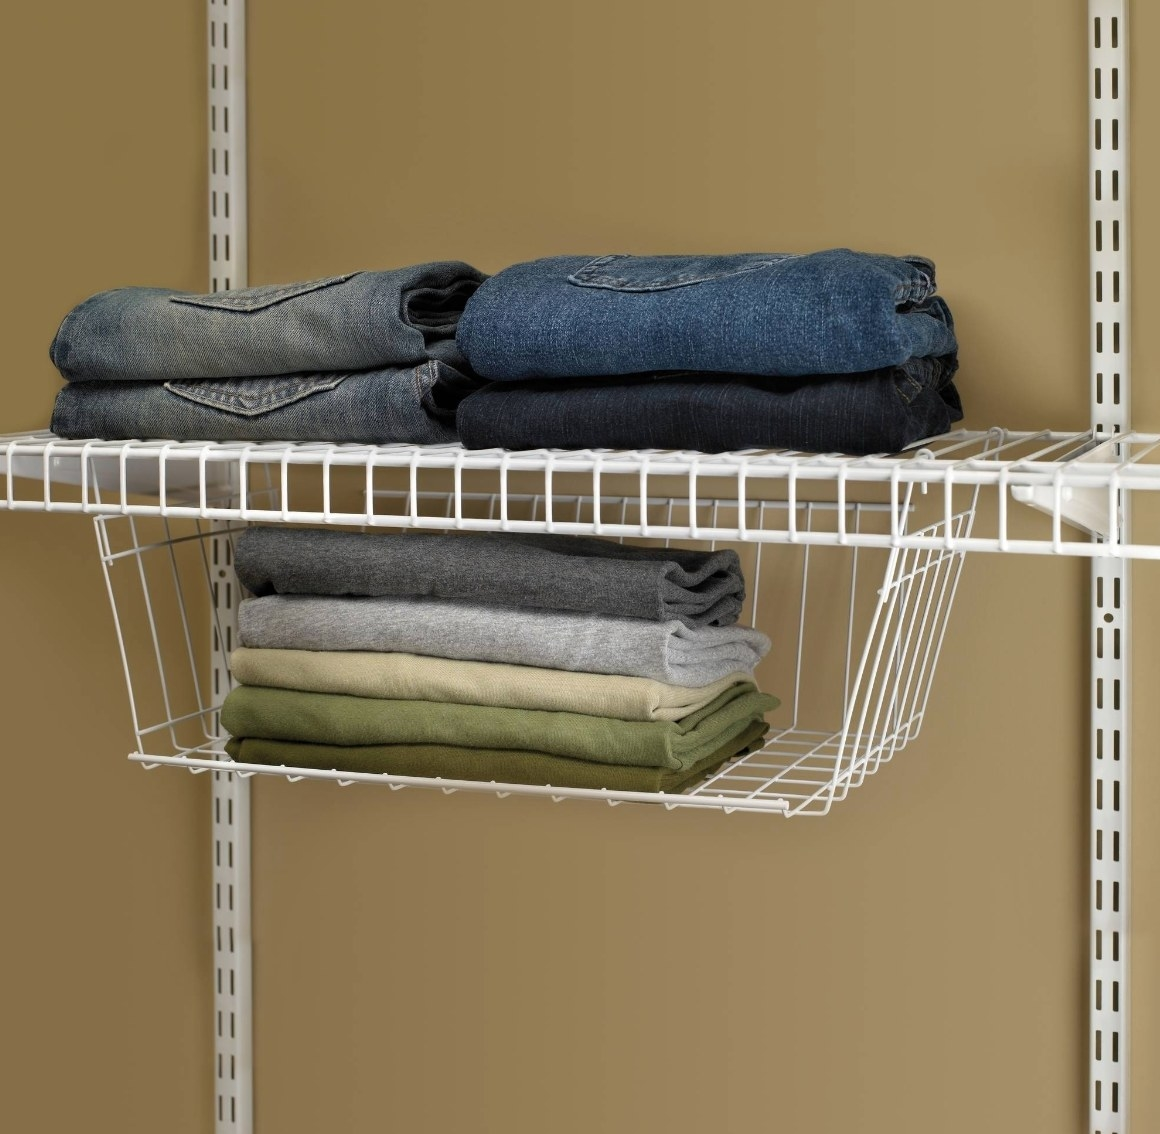 The white hanging basket being used to hold jeans and scarves